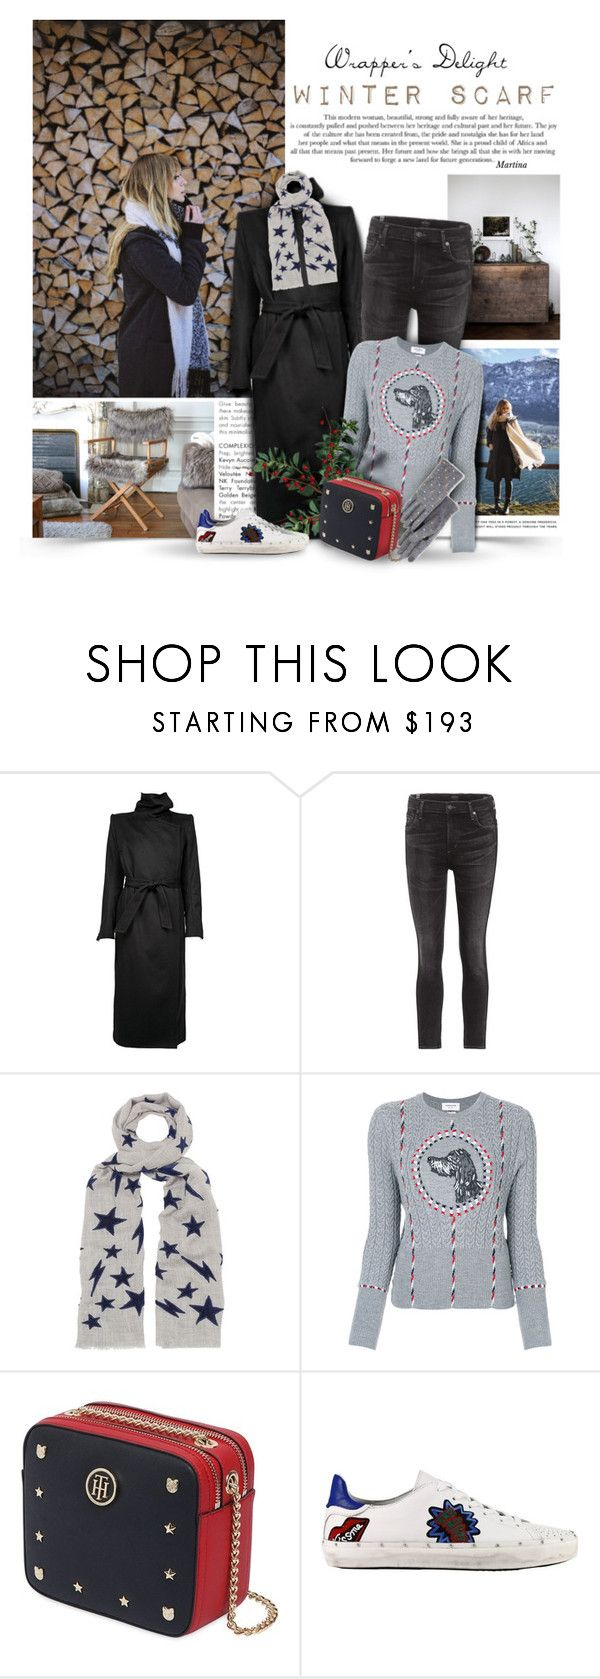 """""""Winter Scarf"""" by thewondersoffashion ❤ liked on Polyvore featuring Ann Demeulemeester, Citizens of Humanity, Lily and Lionel, Trilogy, Thom Browne, Tommy Hilfiger, Rebecca Minkoff and Echo"""